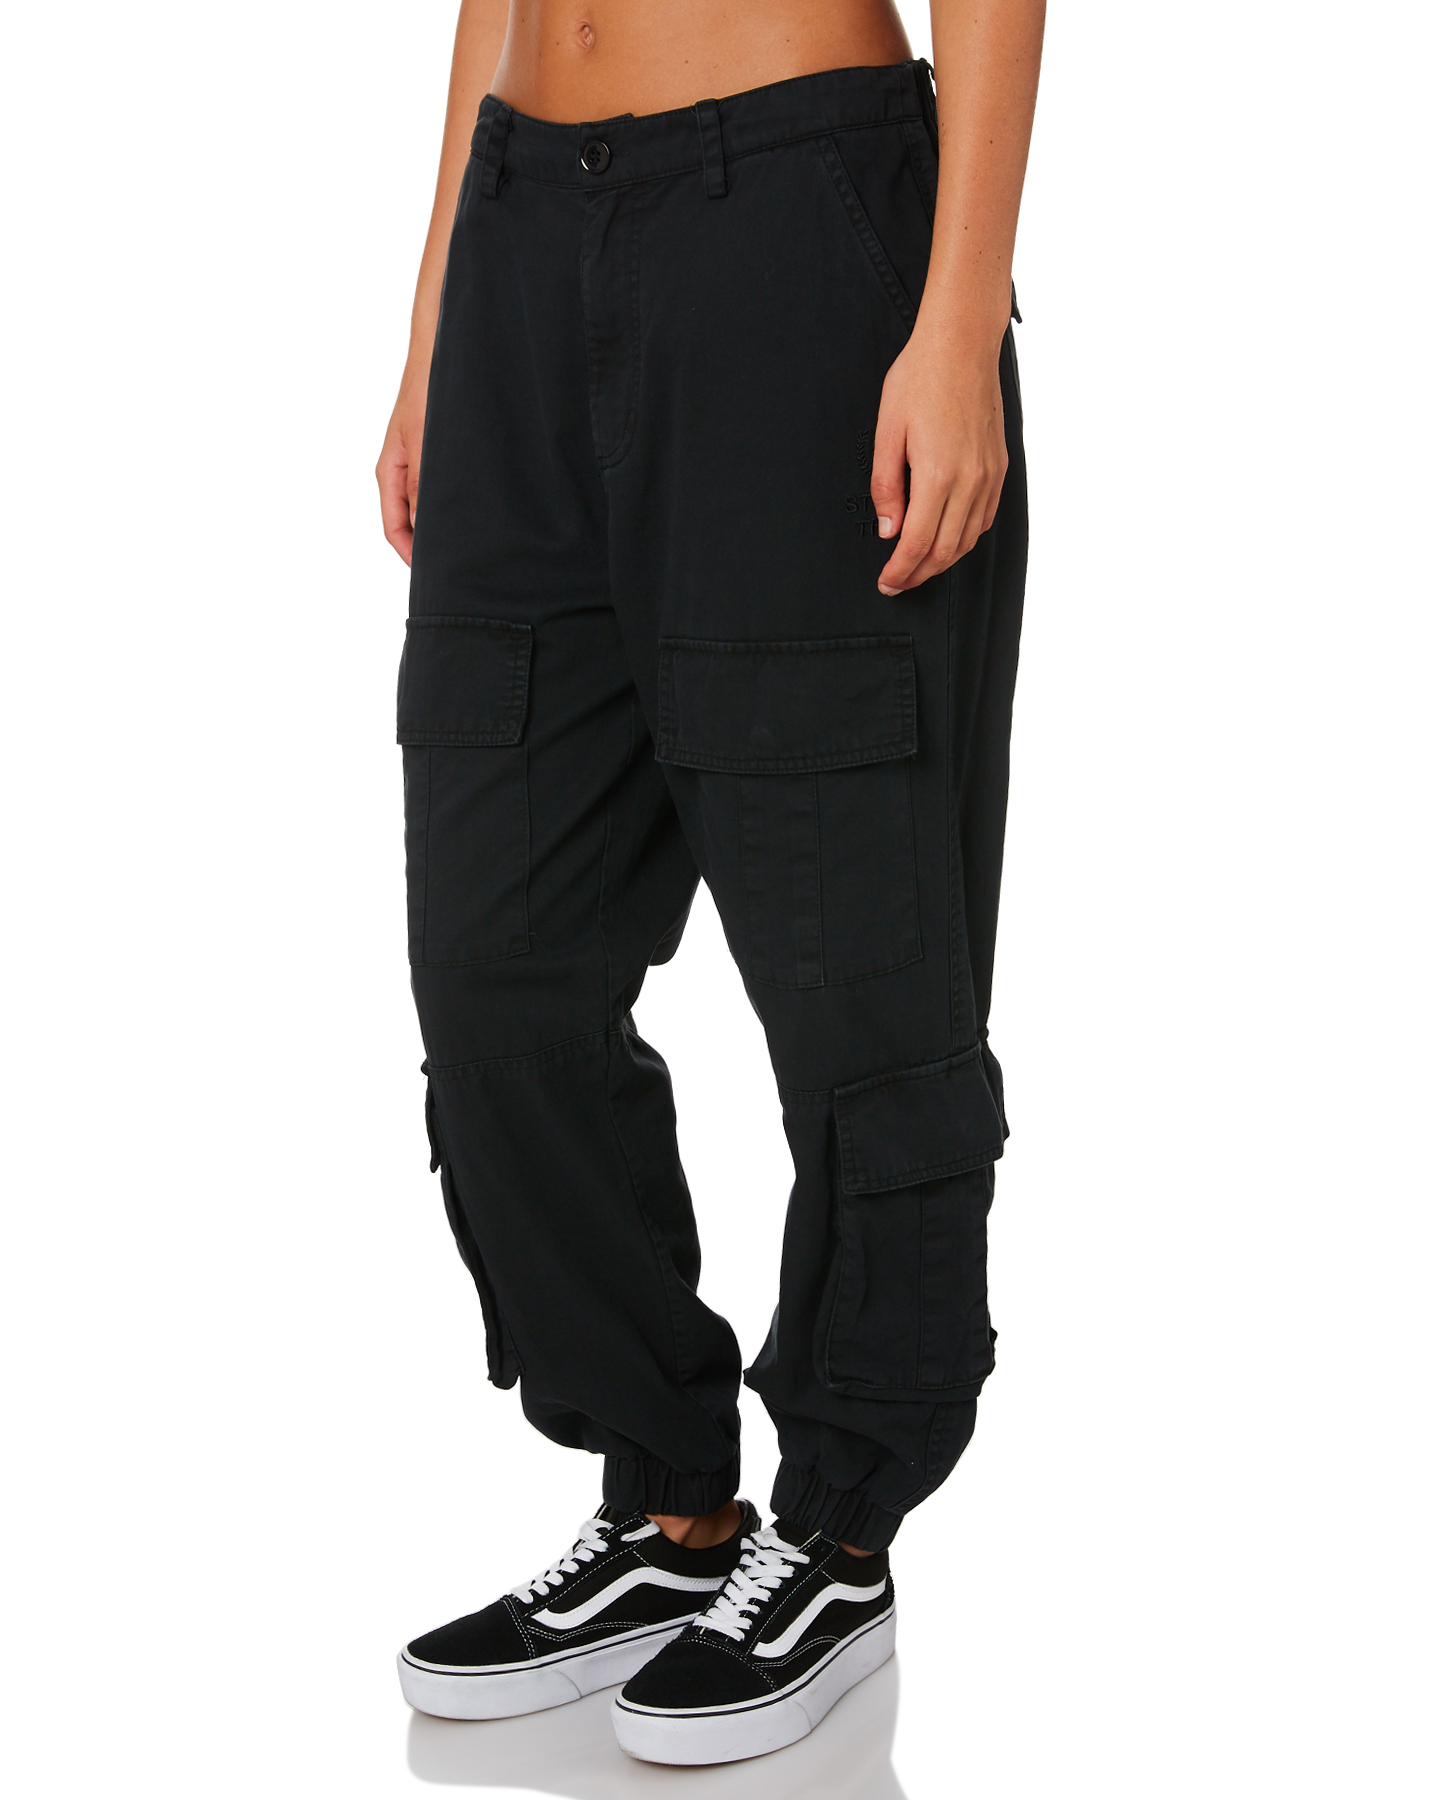 3fca99c2 Details about New Stussy Women's Hunt Cargo Pant Cotton Fitted Black